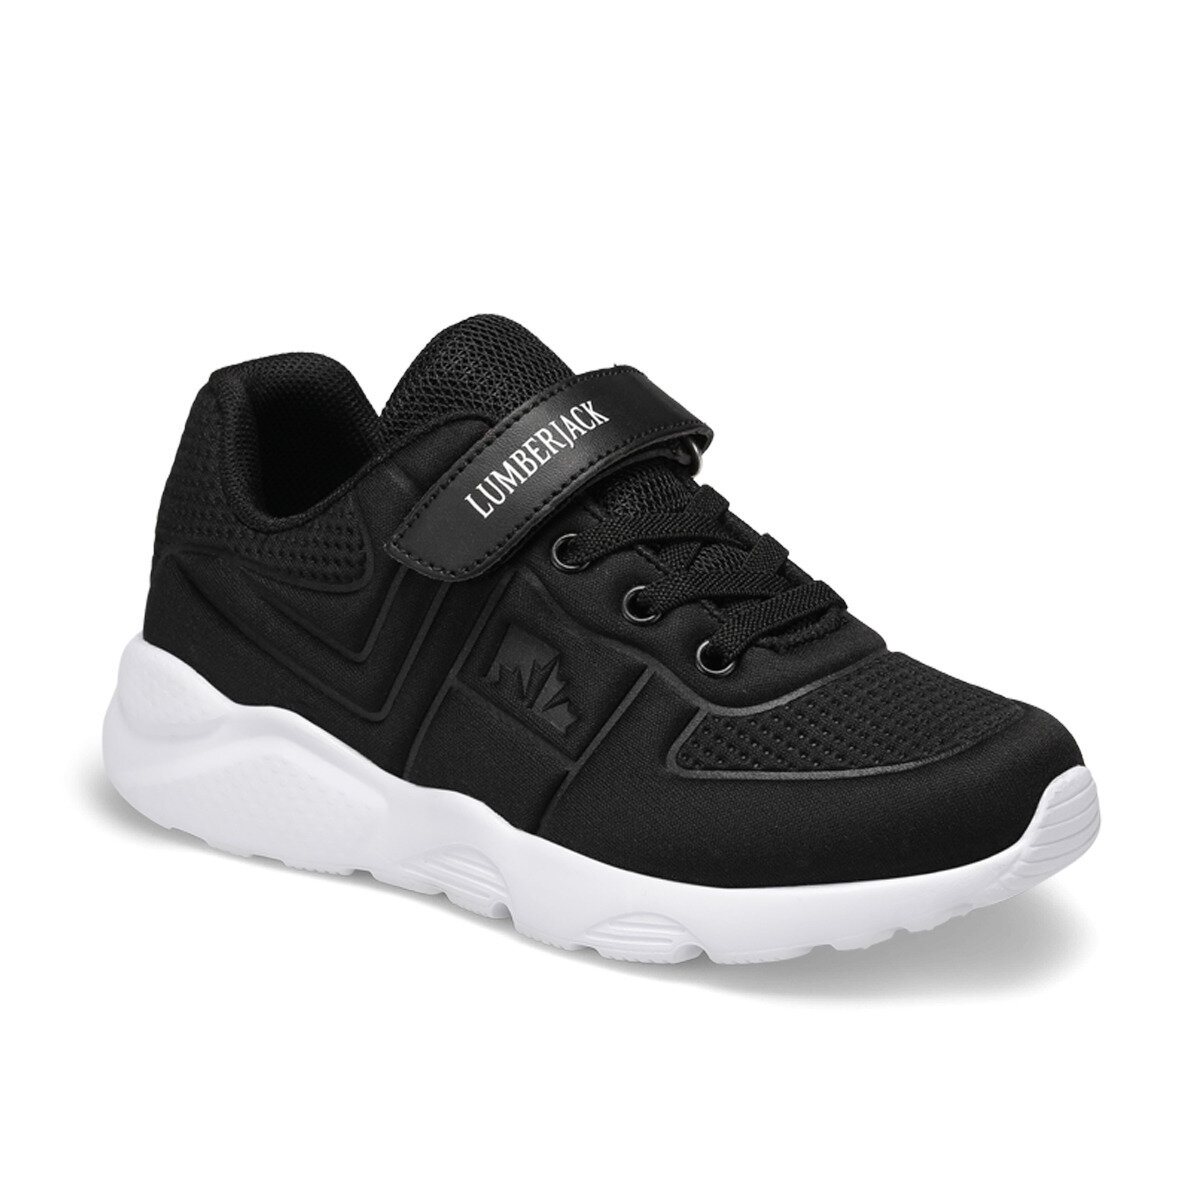 FLO WILEY TEXT Black Male Child Running Shoes LUMBERJACK